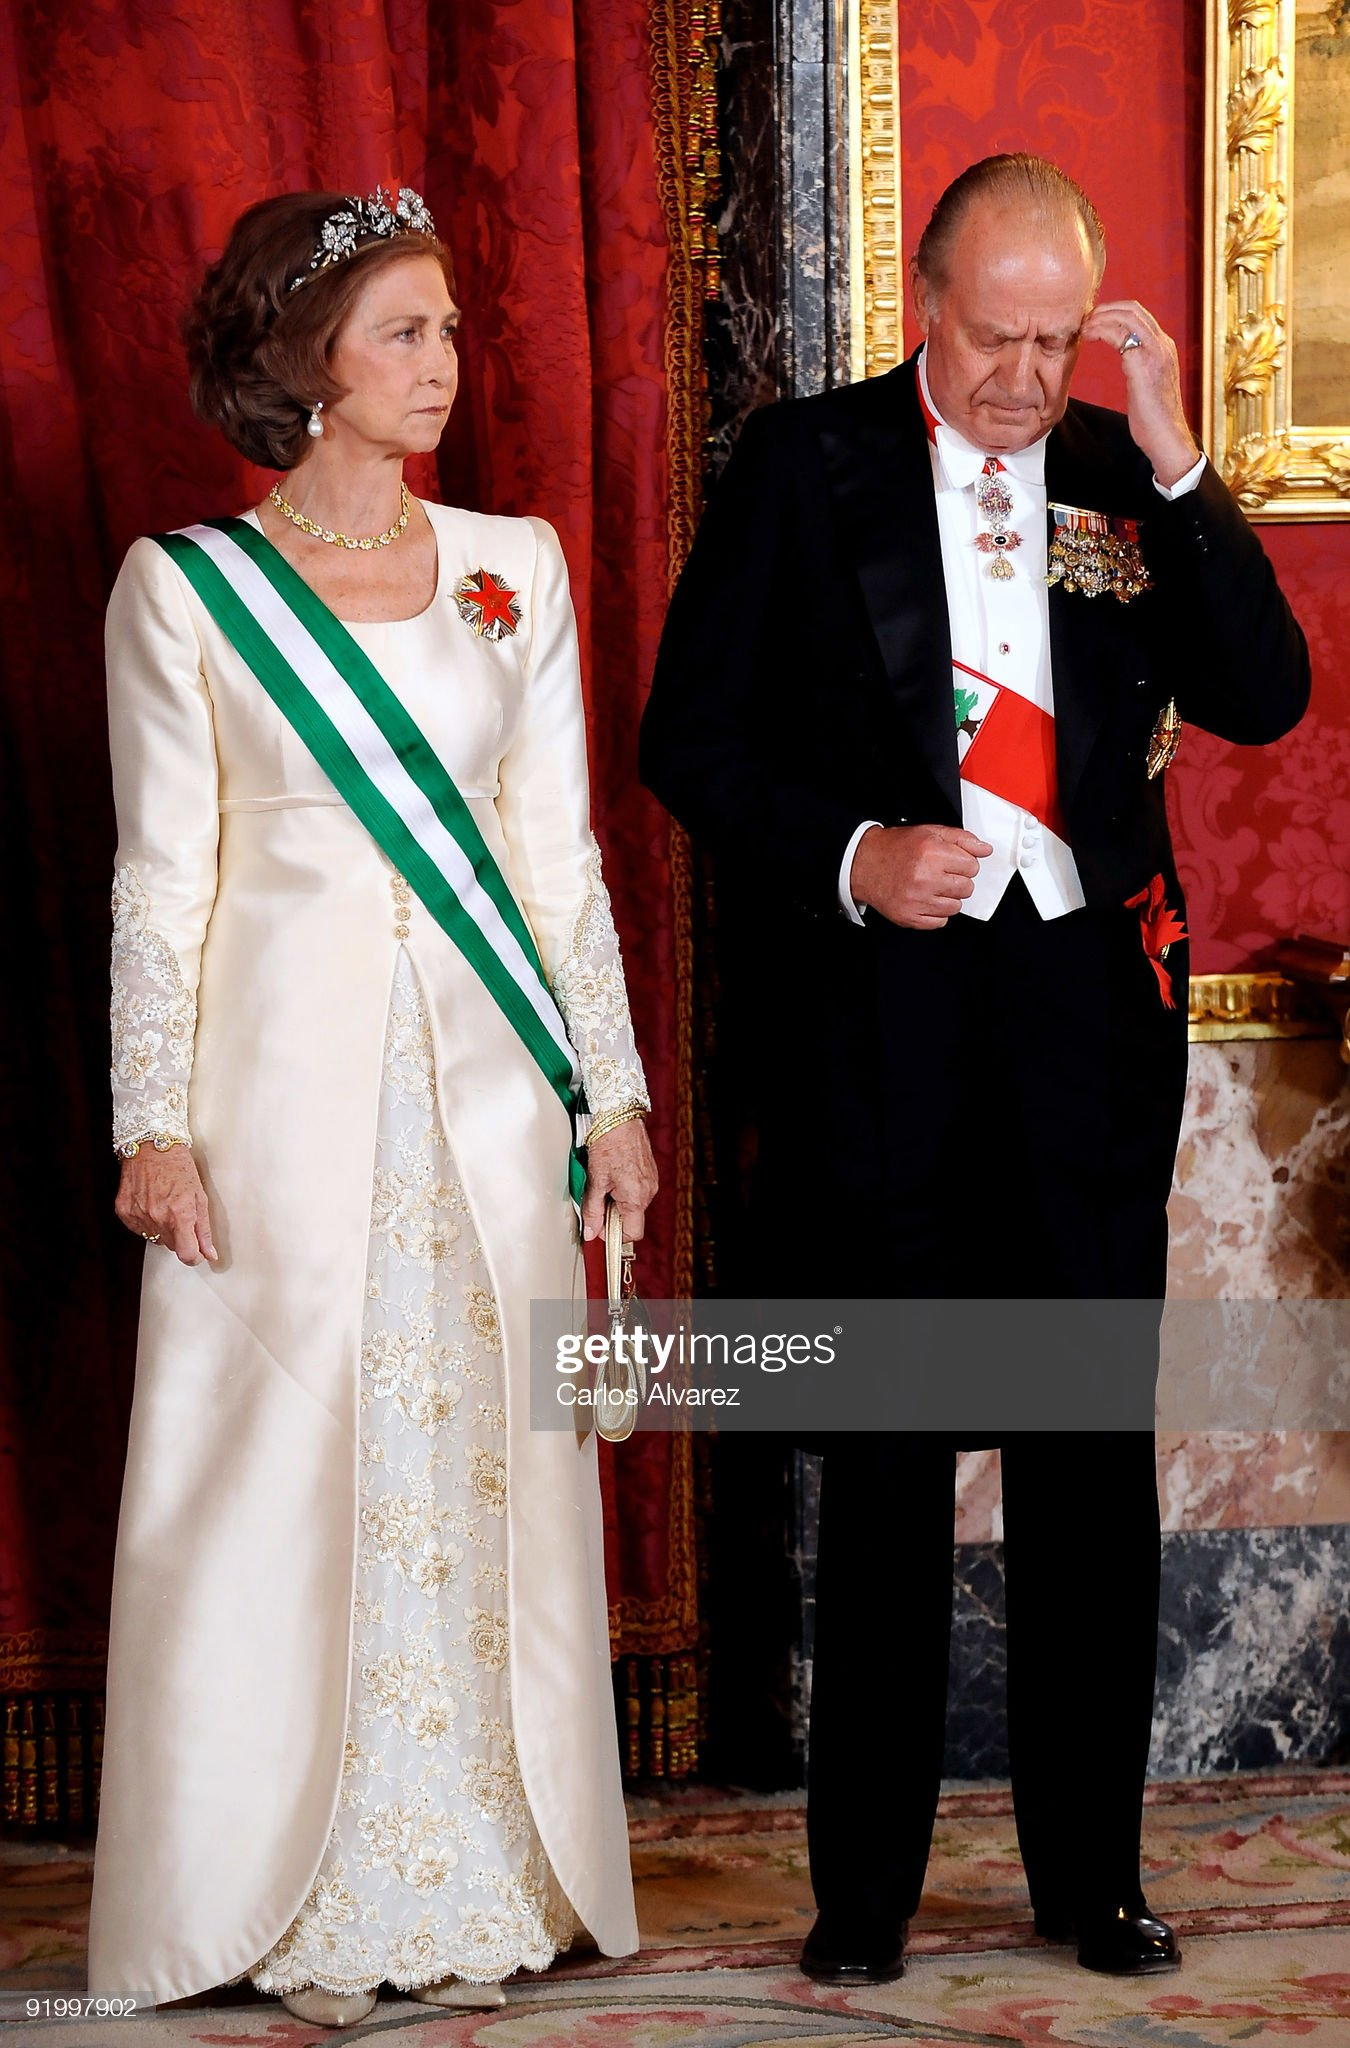 Spanish Royals Host Gala Dinner with Michel Suleiman, President of Lebanon : News Photo